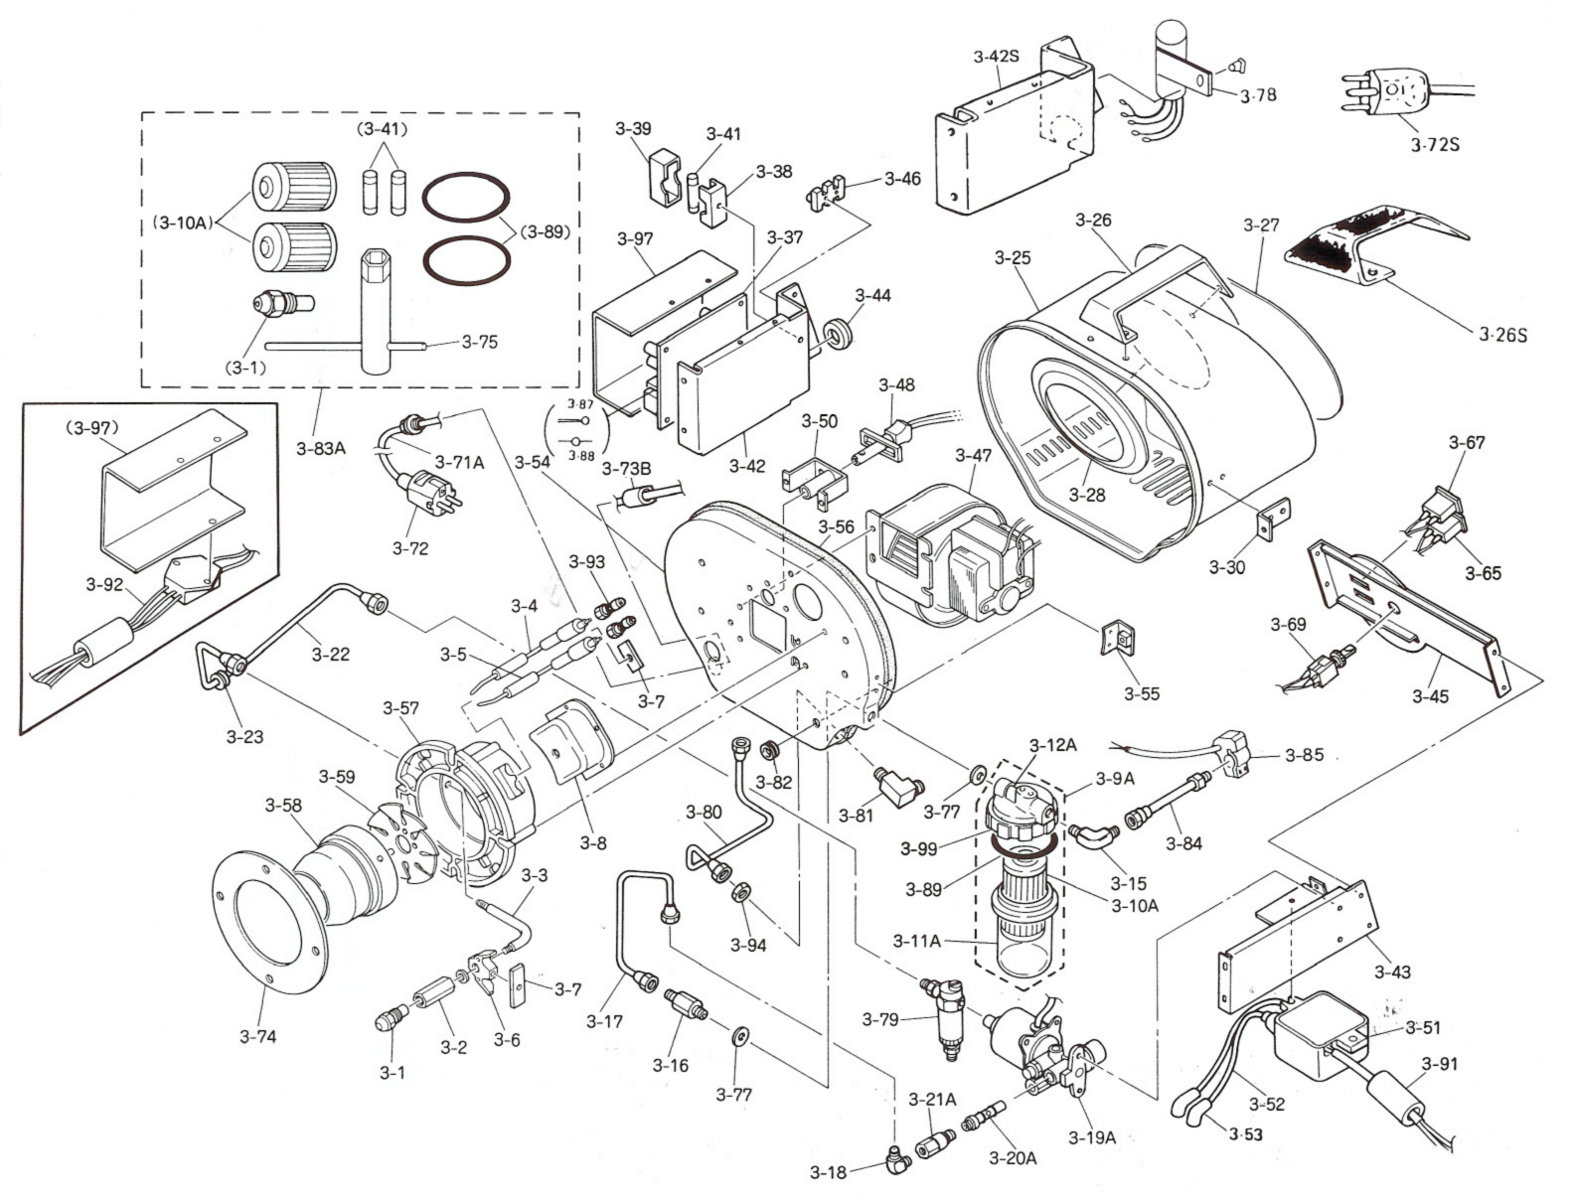 fuse box diagram together with 2007 ford f 250 fuse box diagram as